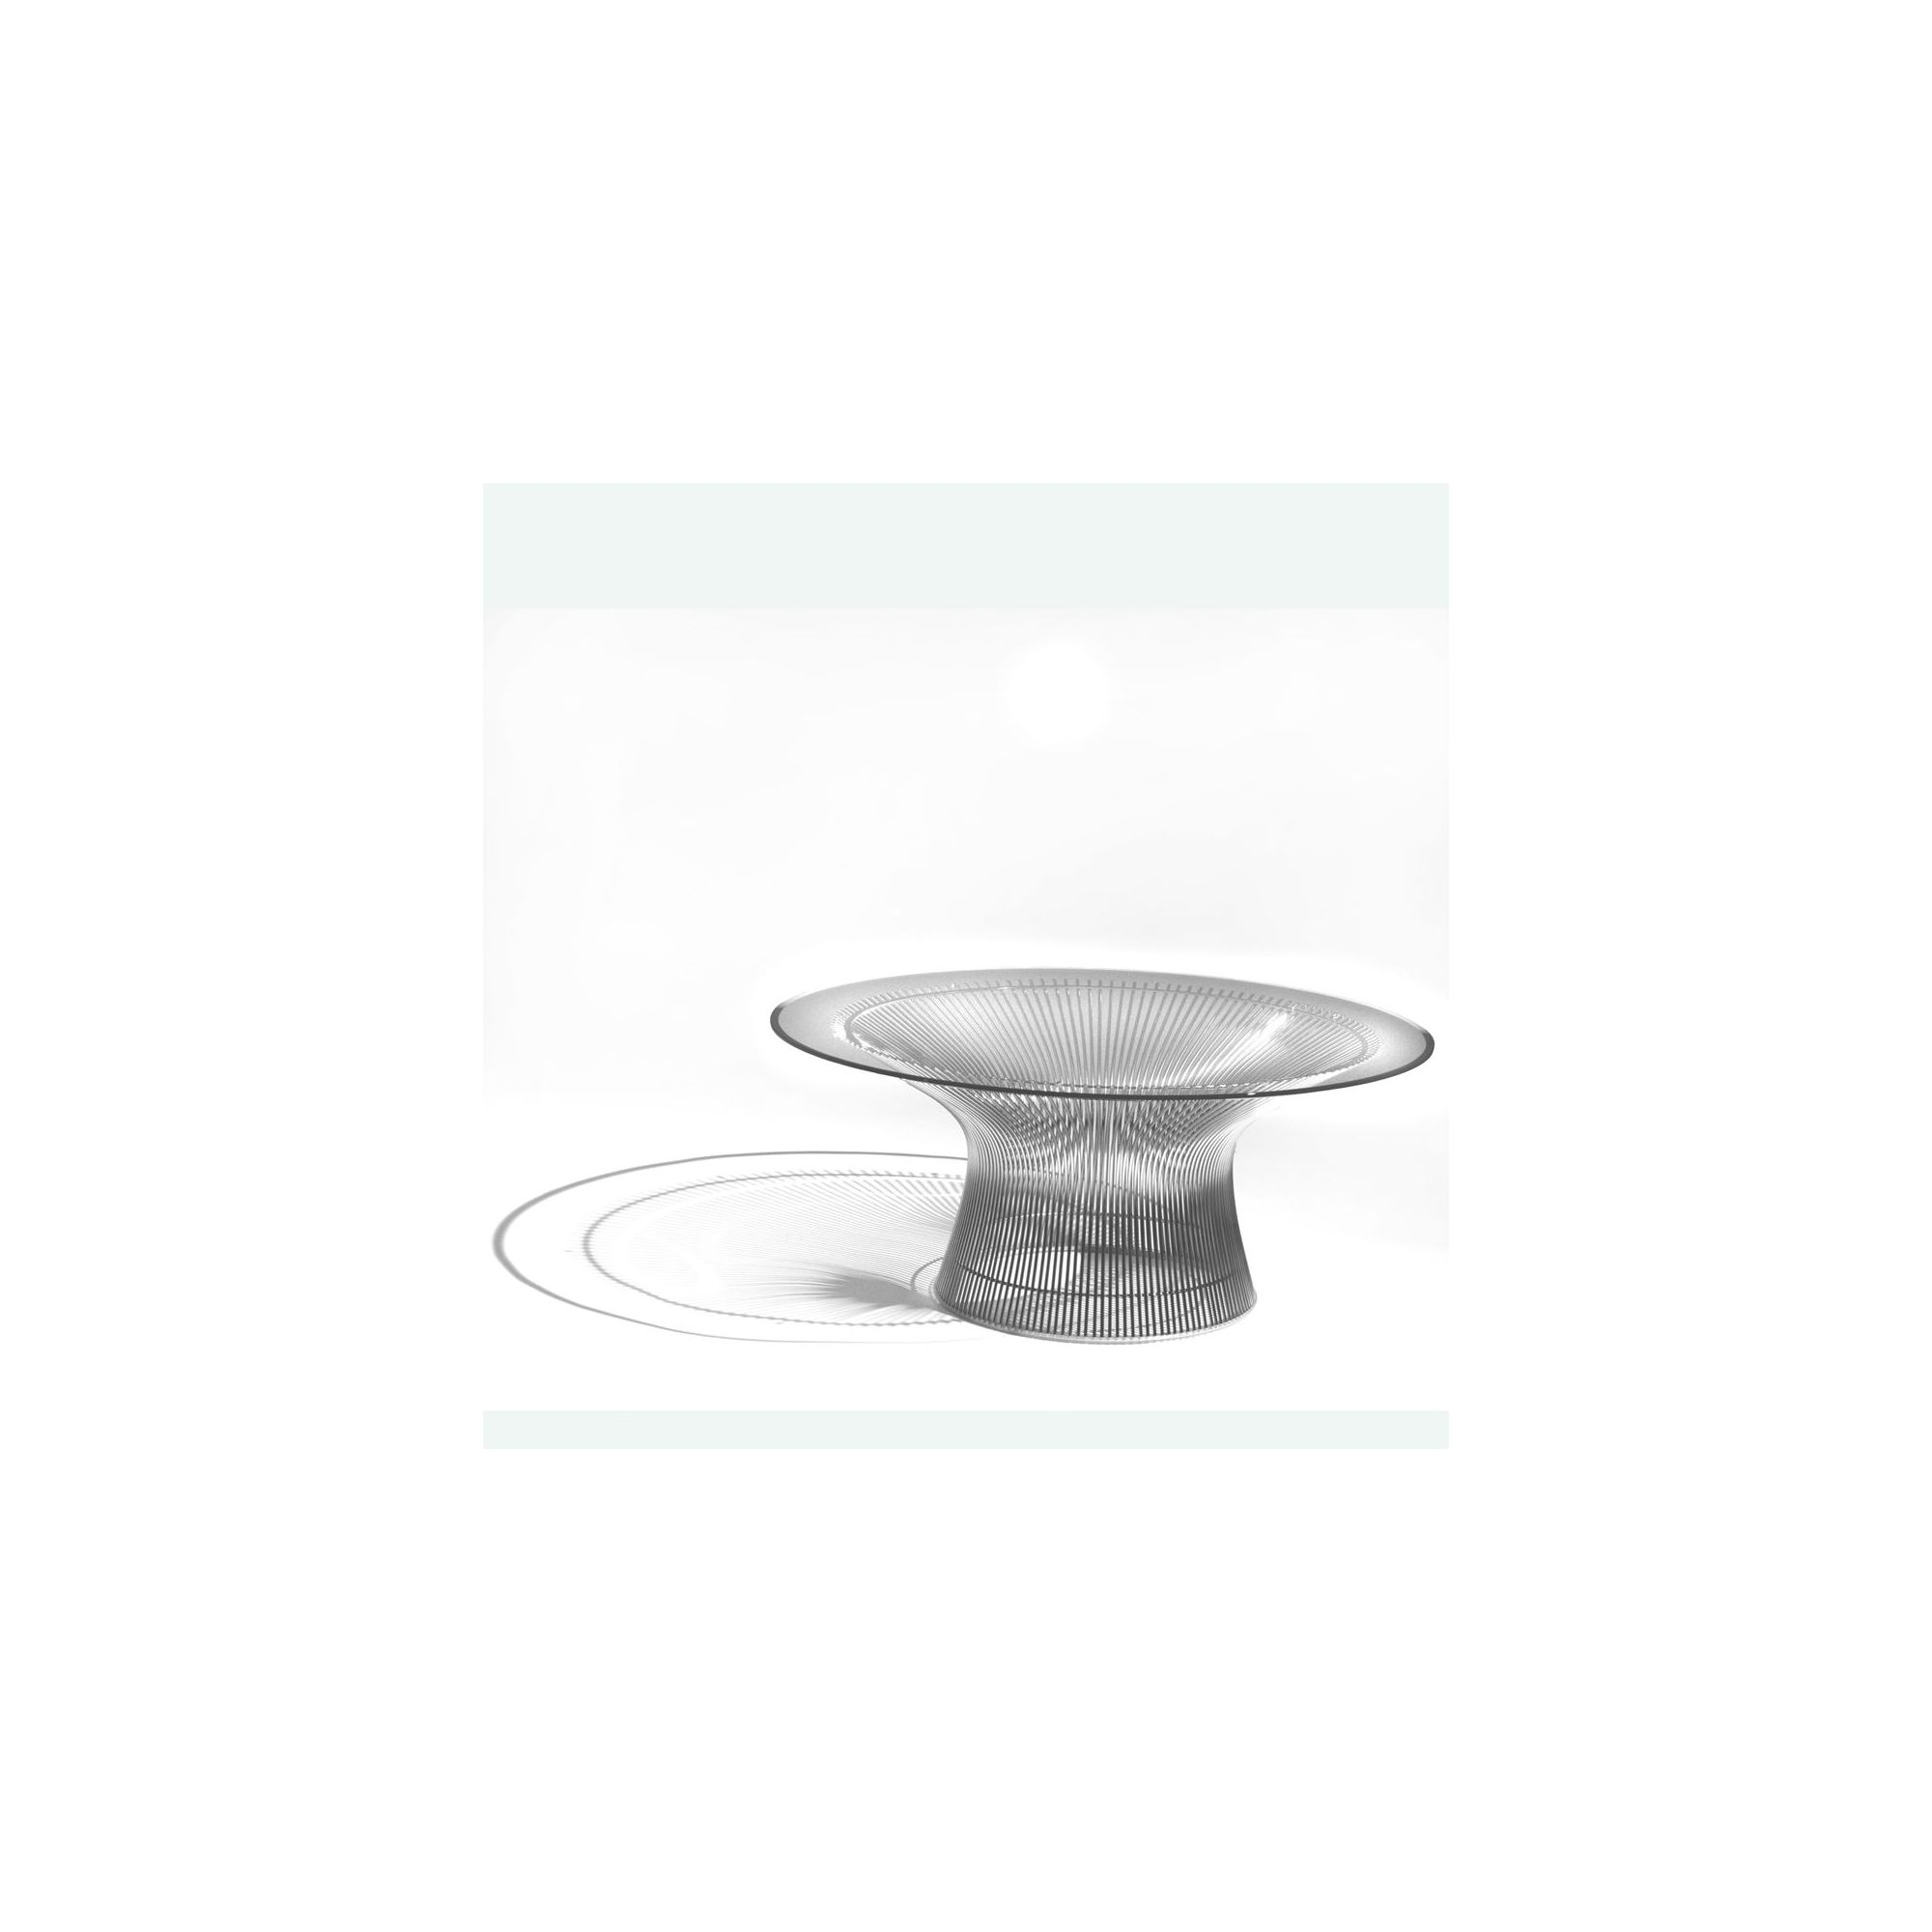 Knoll Coffee Table by Warren Platner - 107cm Dia / Metallic Bronze / Clear Glass at Tesco Direct